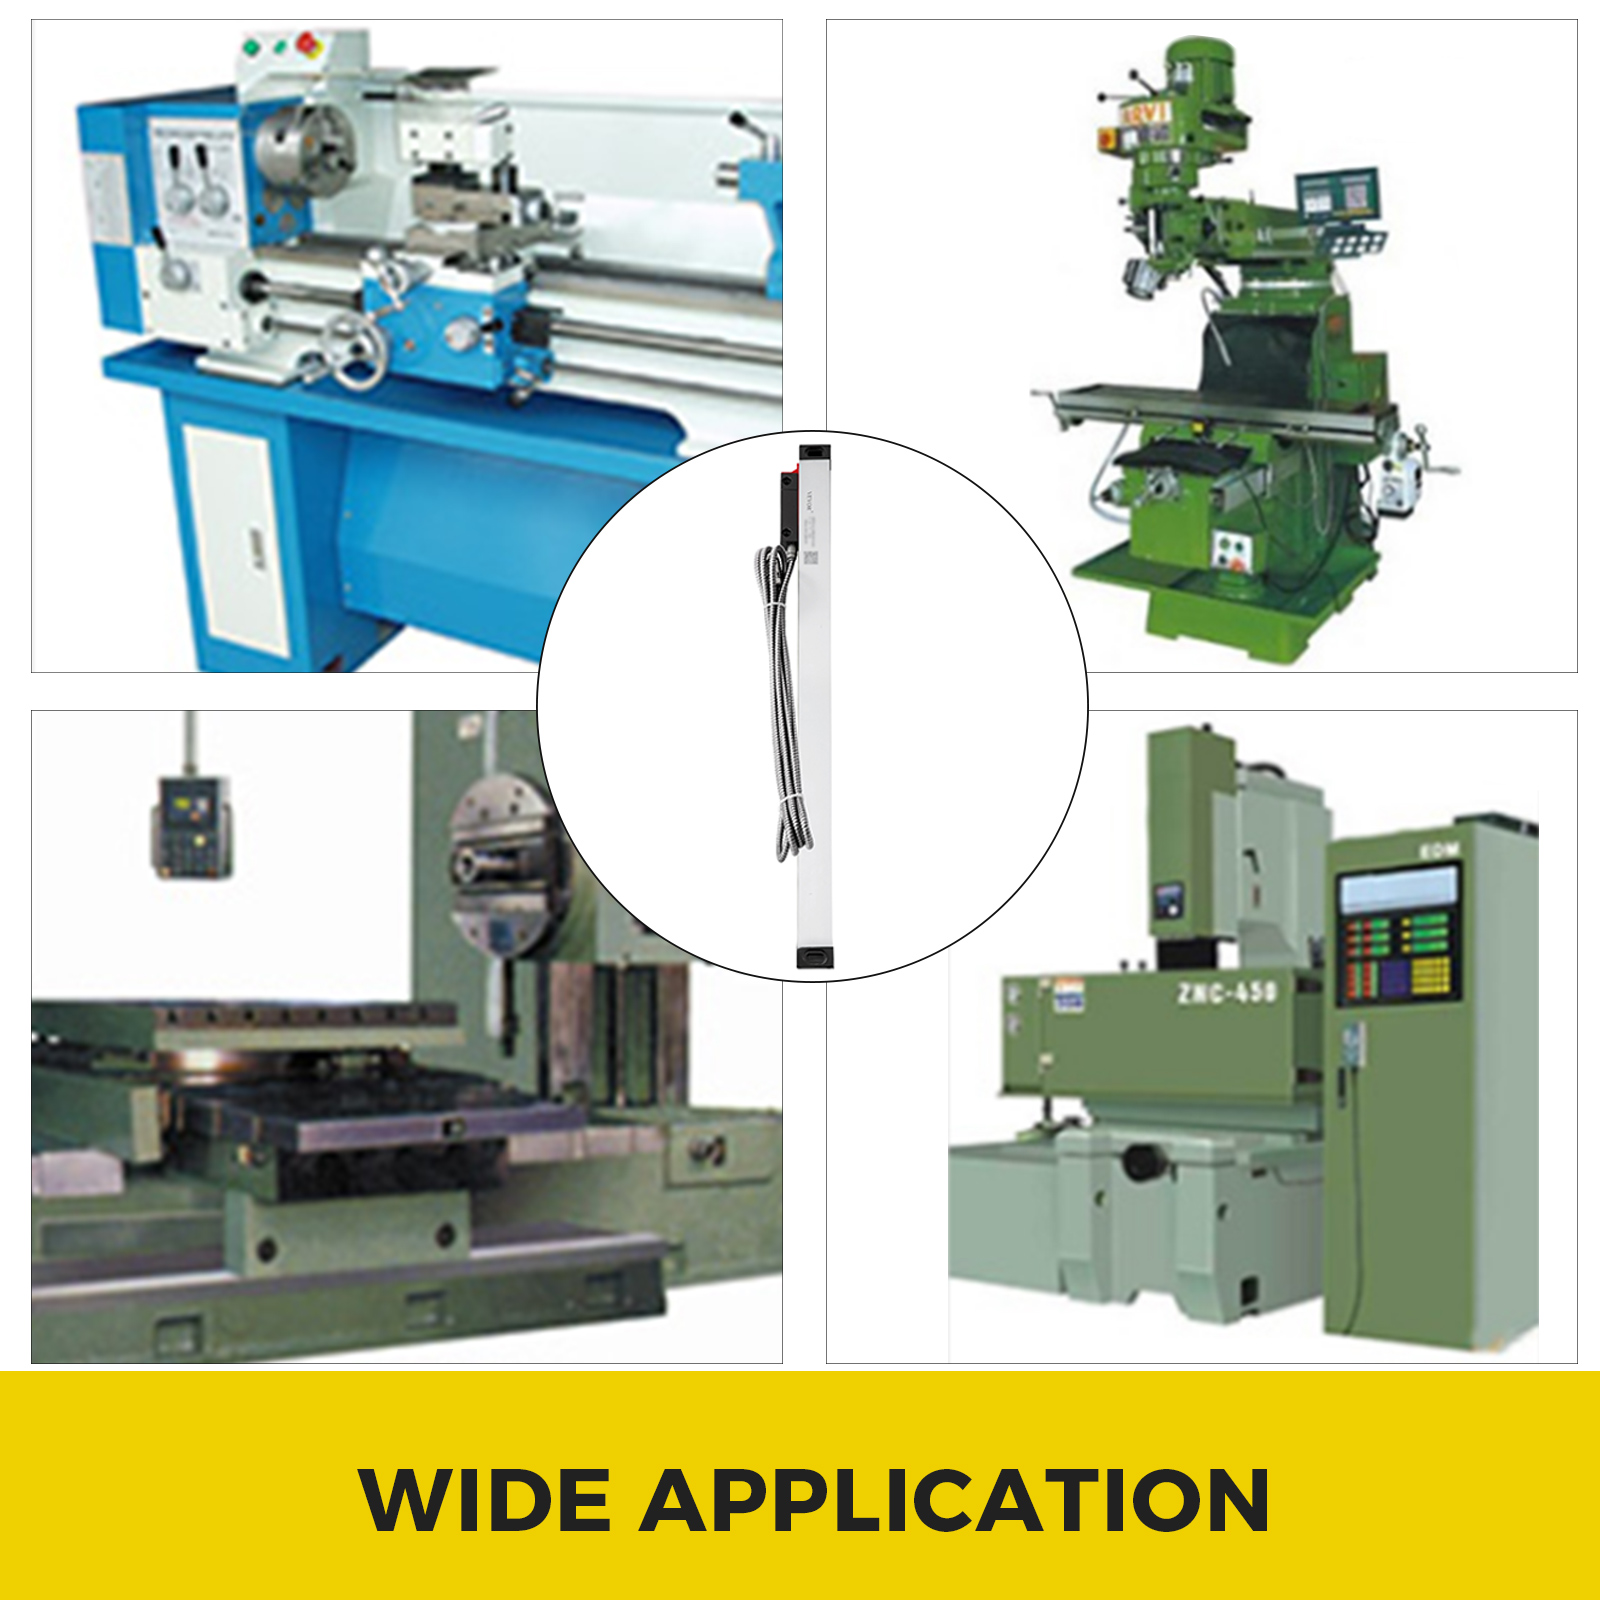 2-3-Axis-Digital-Readout-Linear-Scale-Double-Seal-5-Bearing-System-Grinding thumbnail 115